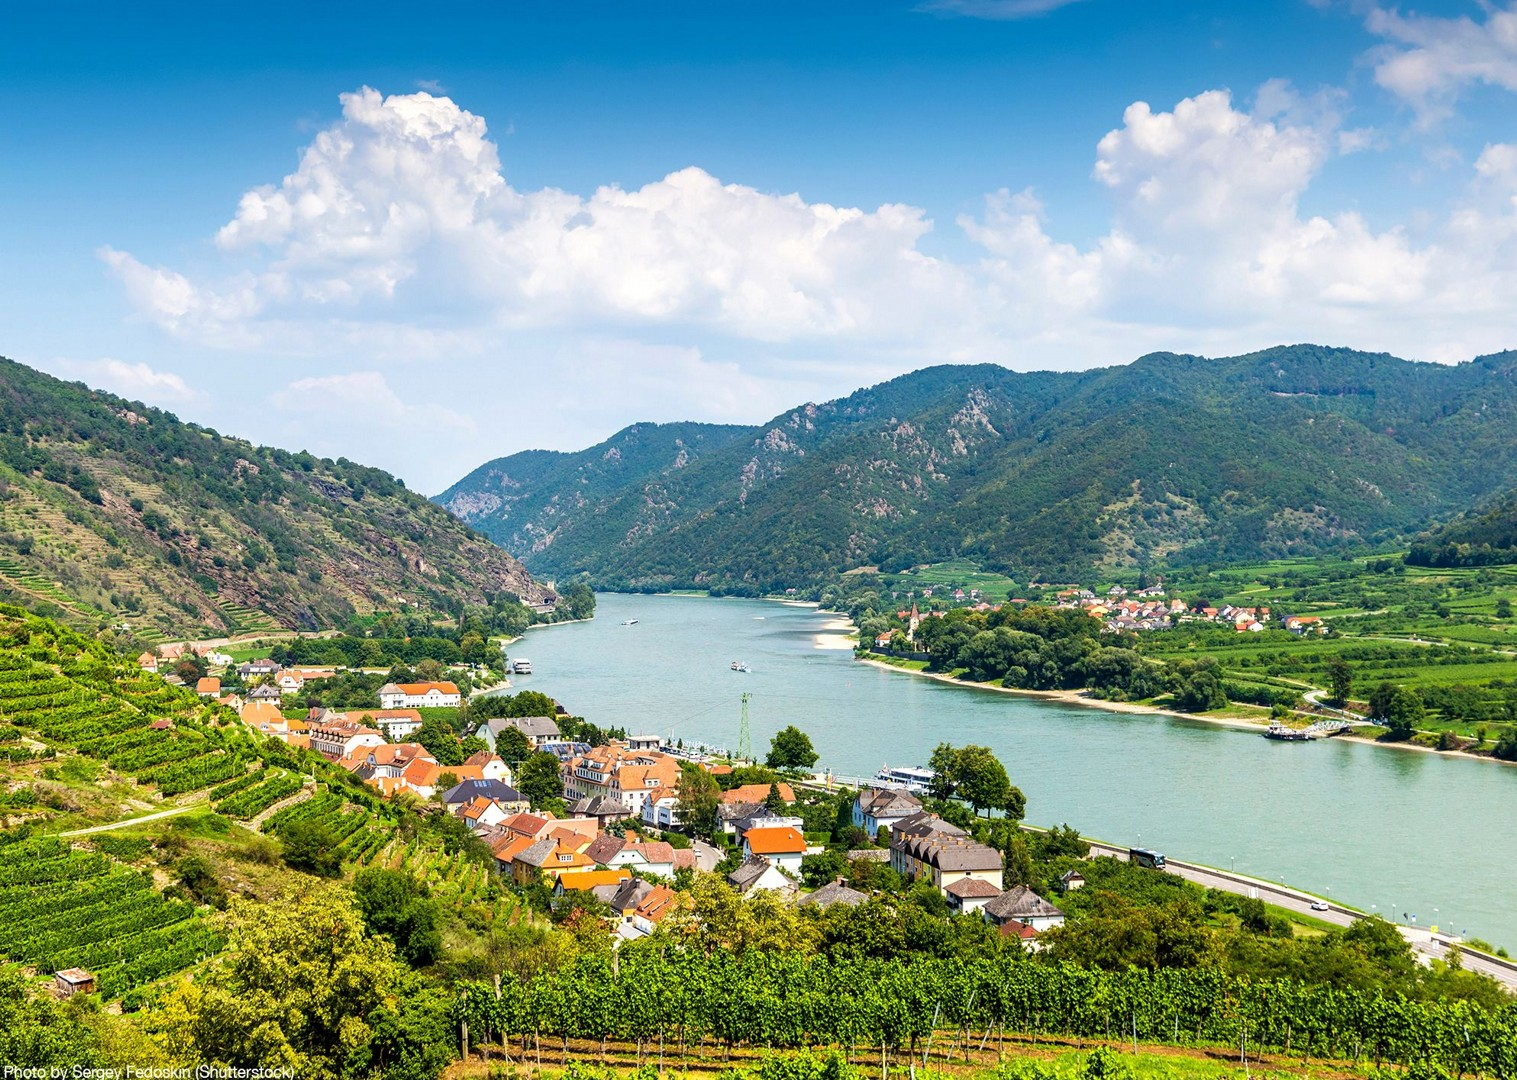 incredible-scenery-danube-river-cycle-tour-supported.jpg - Germany and Austria - The Danube Cycle Path - Supported Leisure Cycling Holiday - Leisure Cycling